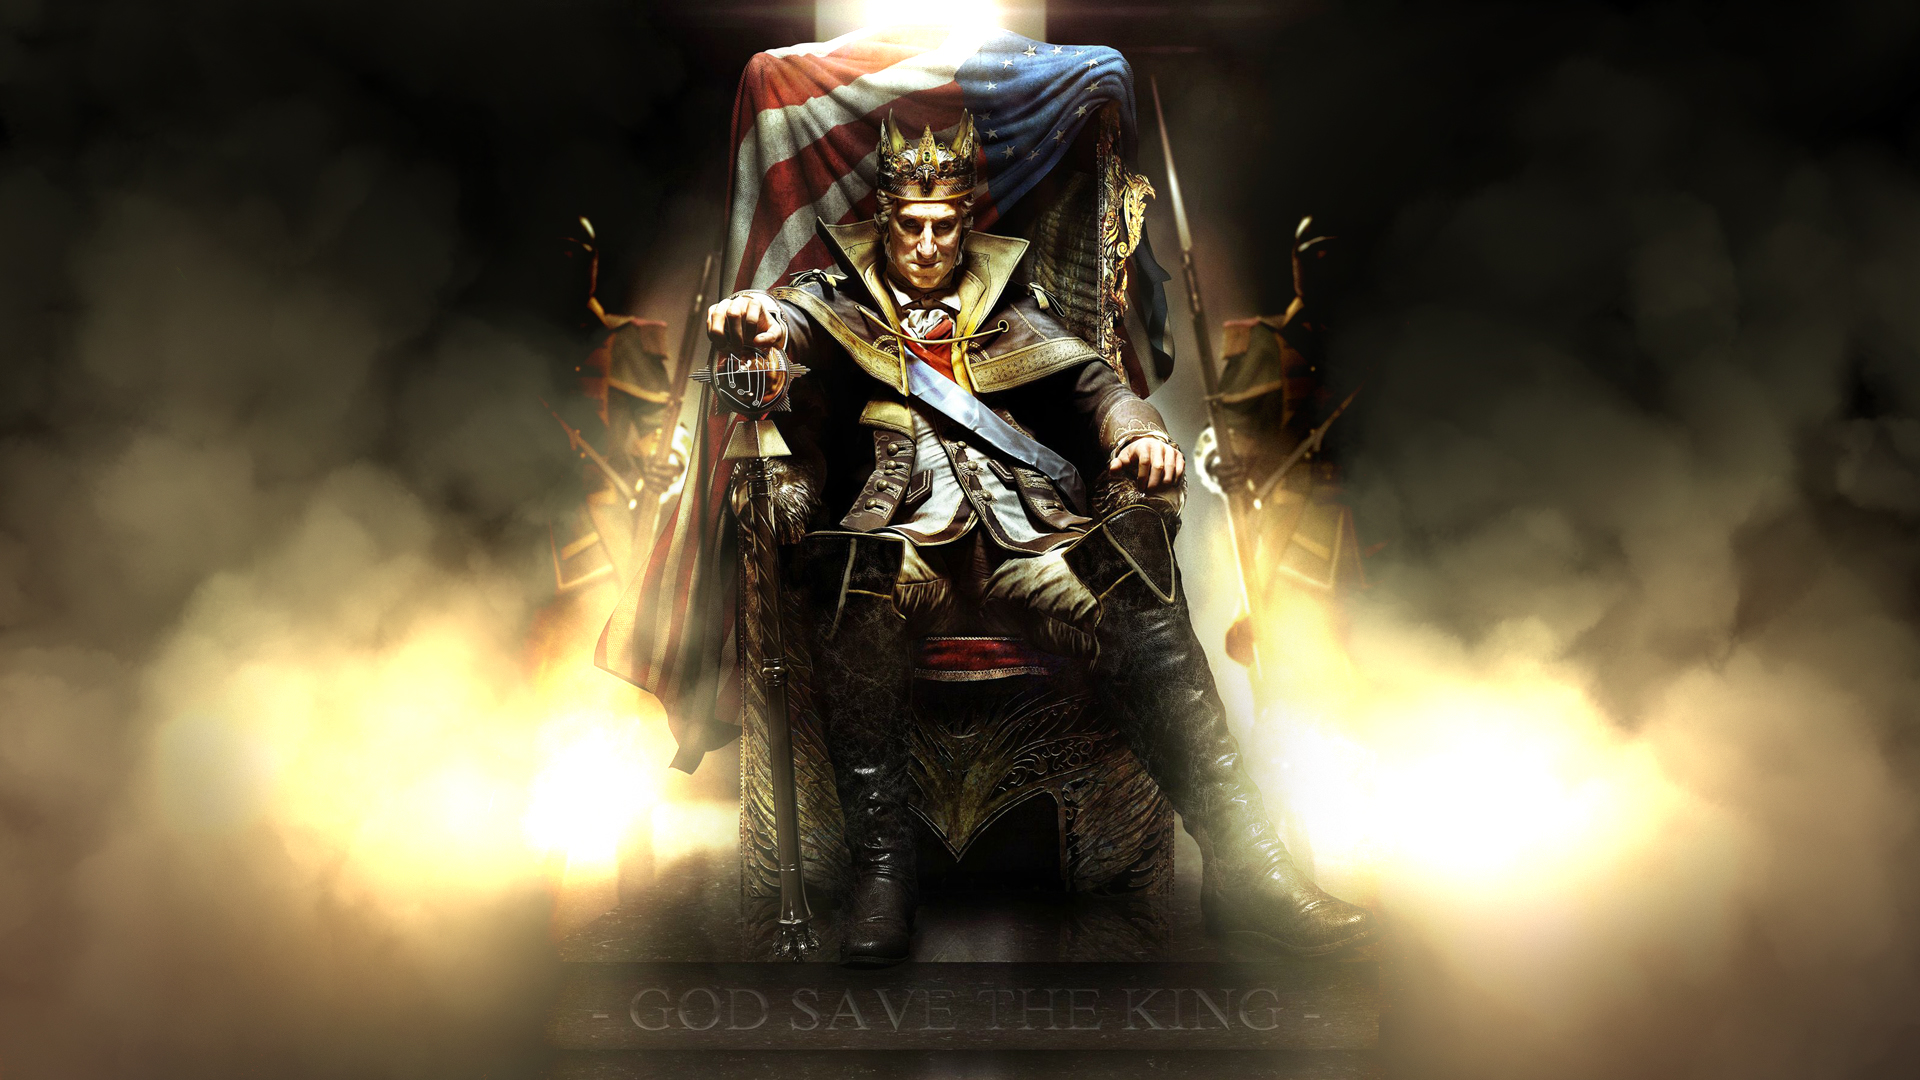 King HD Wallpapers